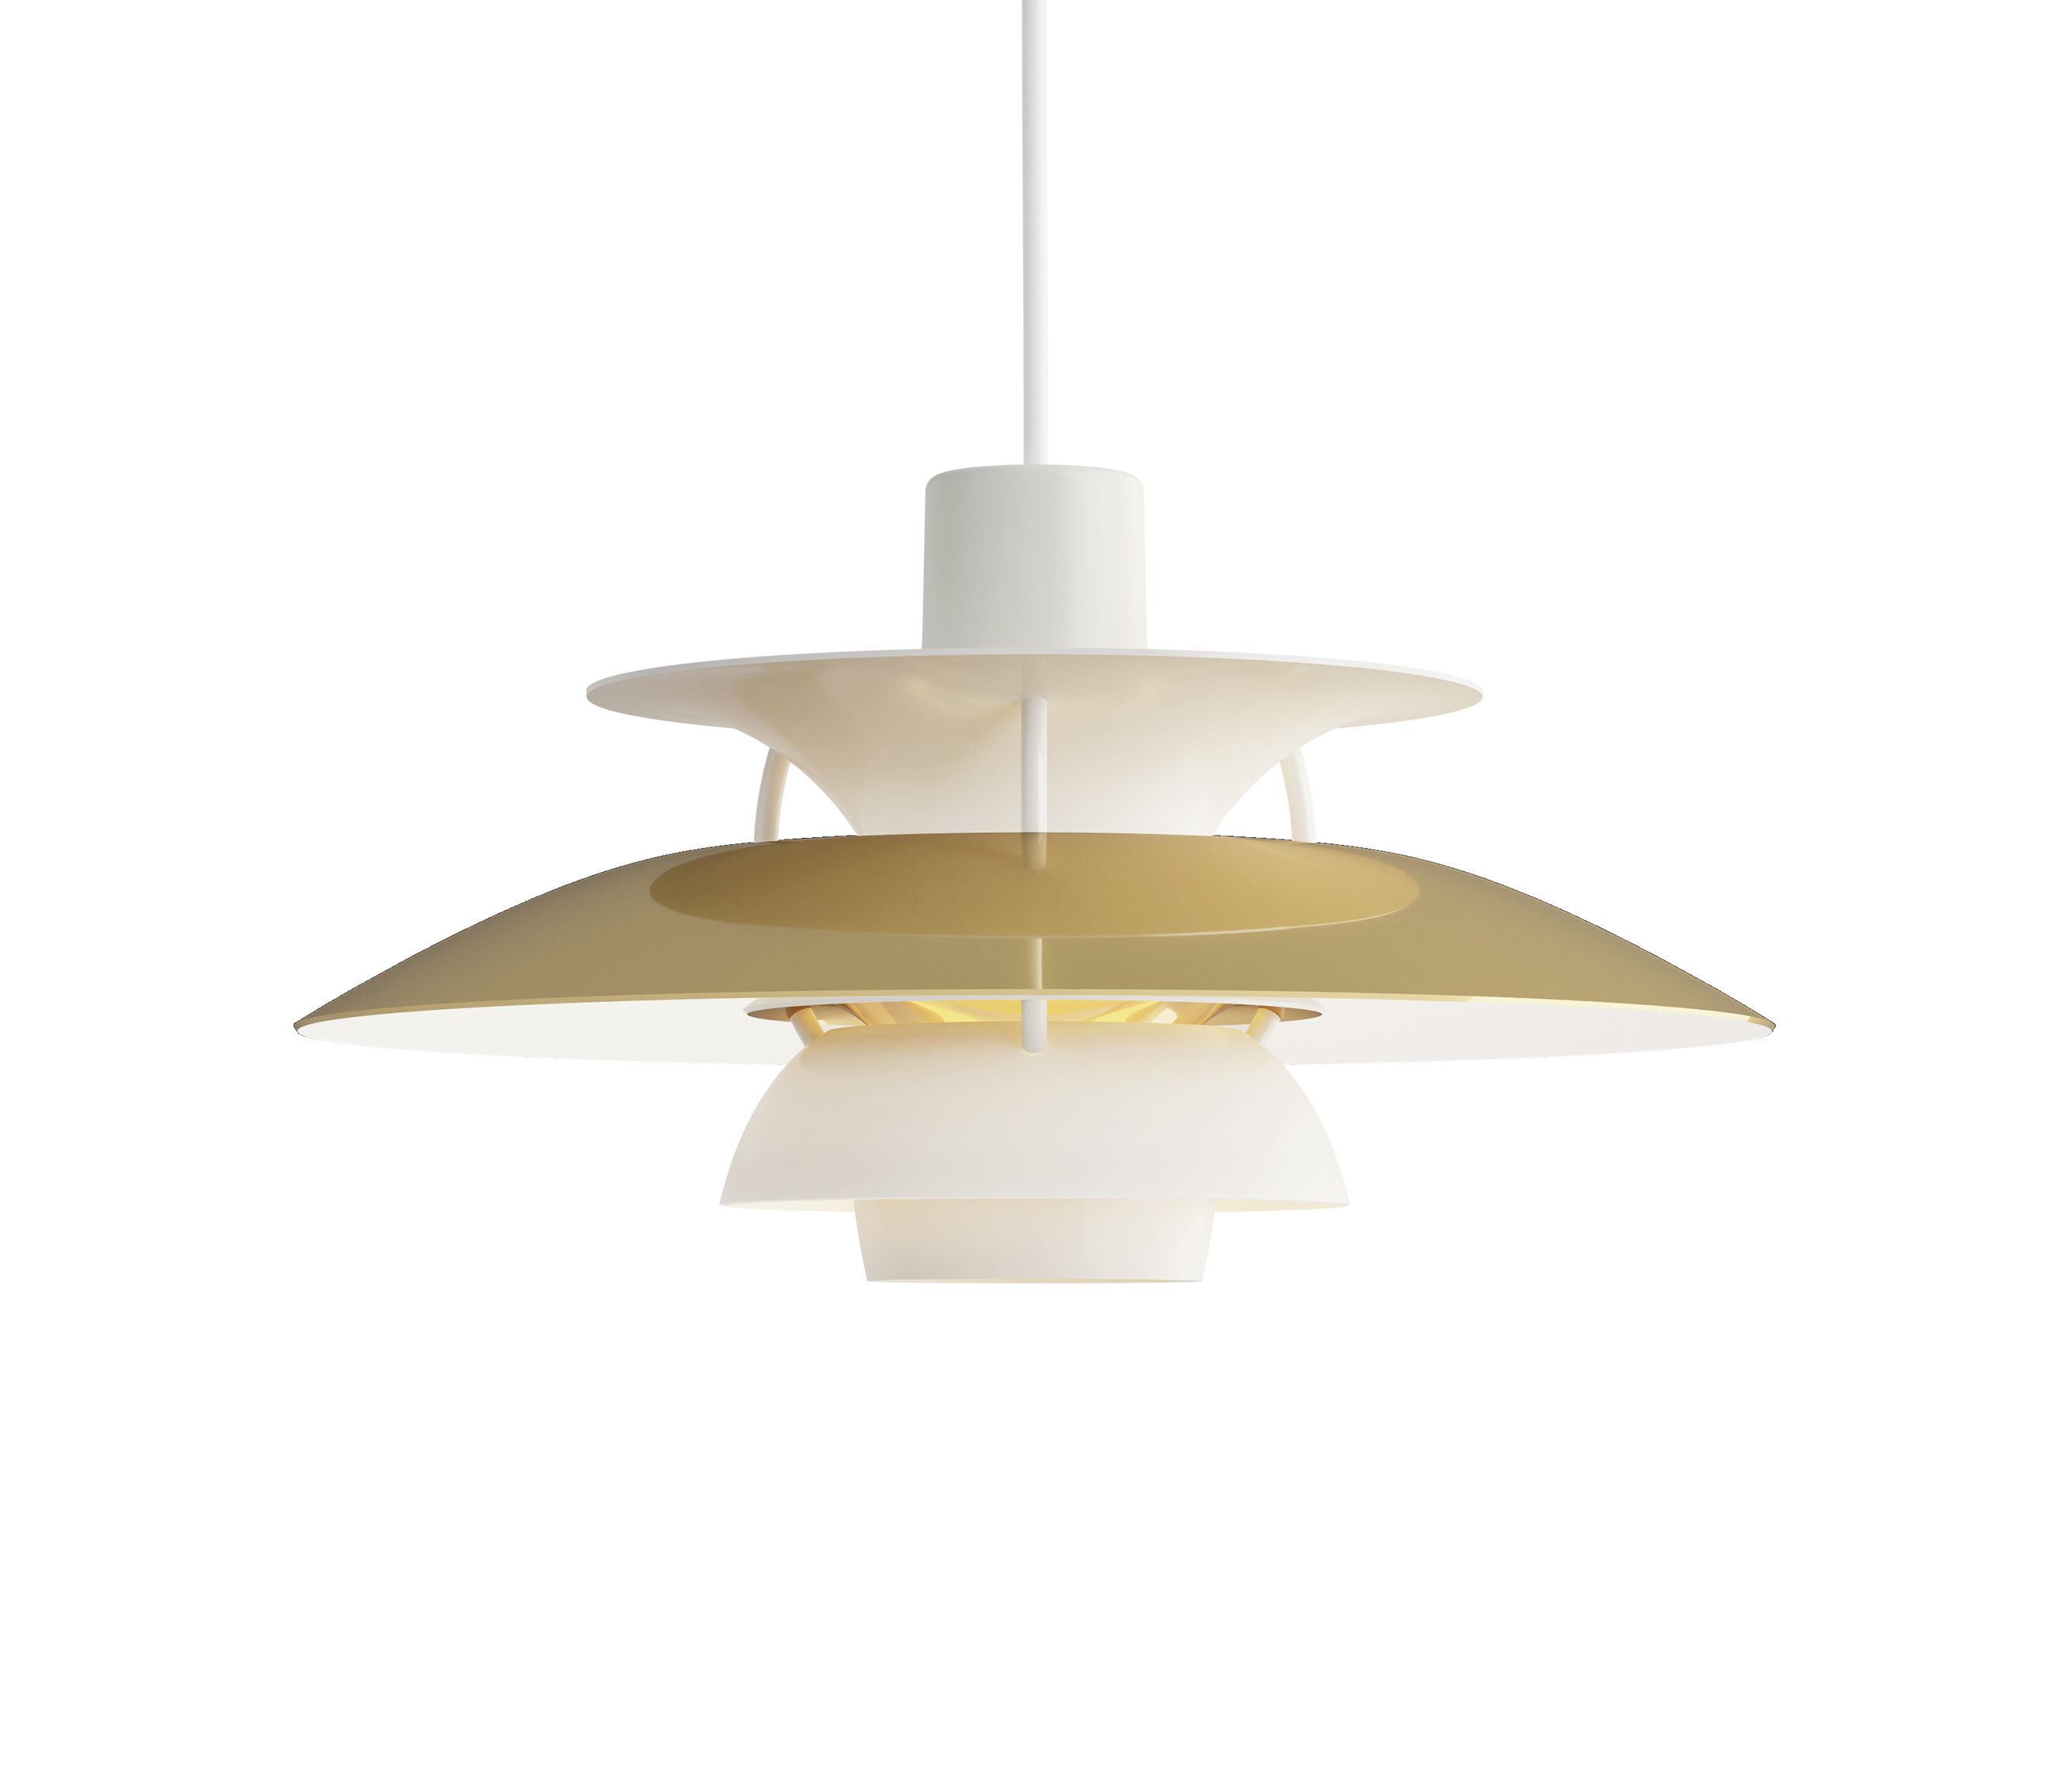 Lighting - Pendant Lighting - PH 5 Mini Pendant - / Ø 30 cm by Louis Poulsen - Brass & white / White rods - Lacquered aluminium, Polished brass